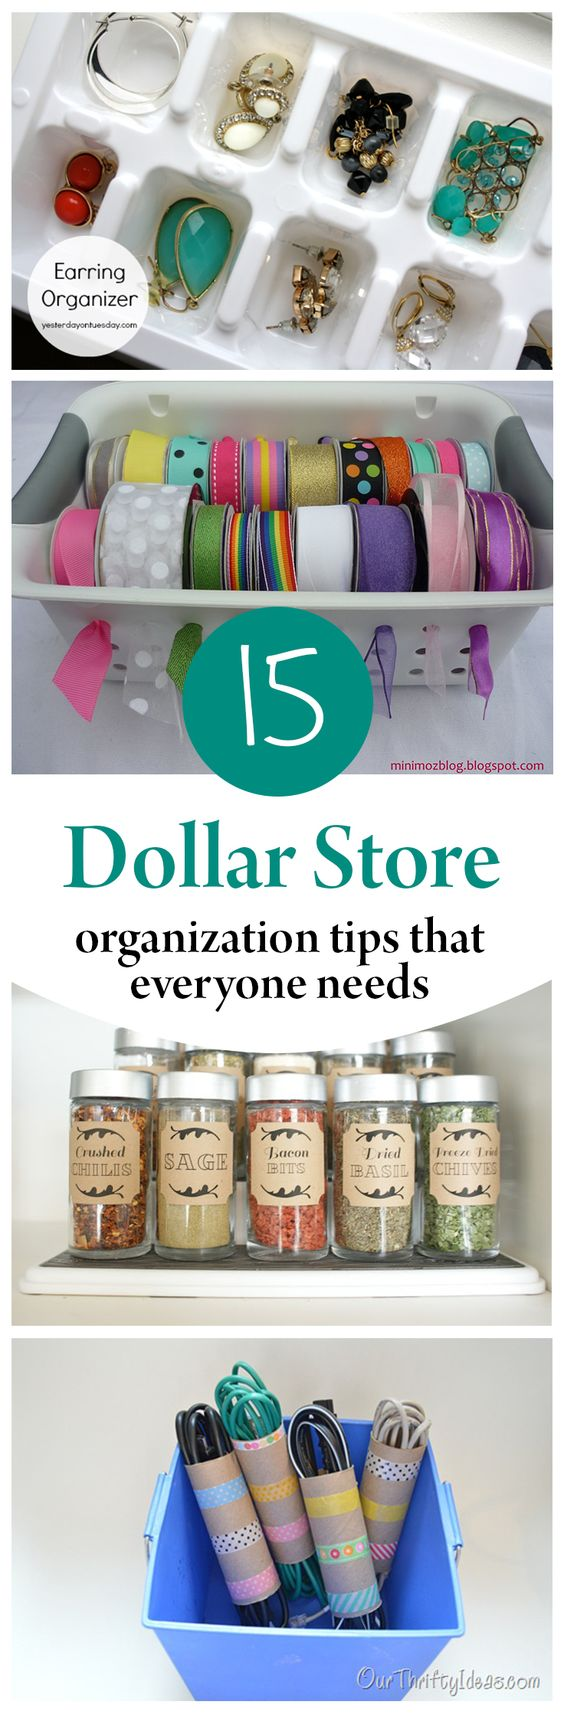 Spice Jars Organization Hacks And Cleaning Hacks On Pinterest